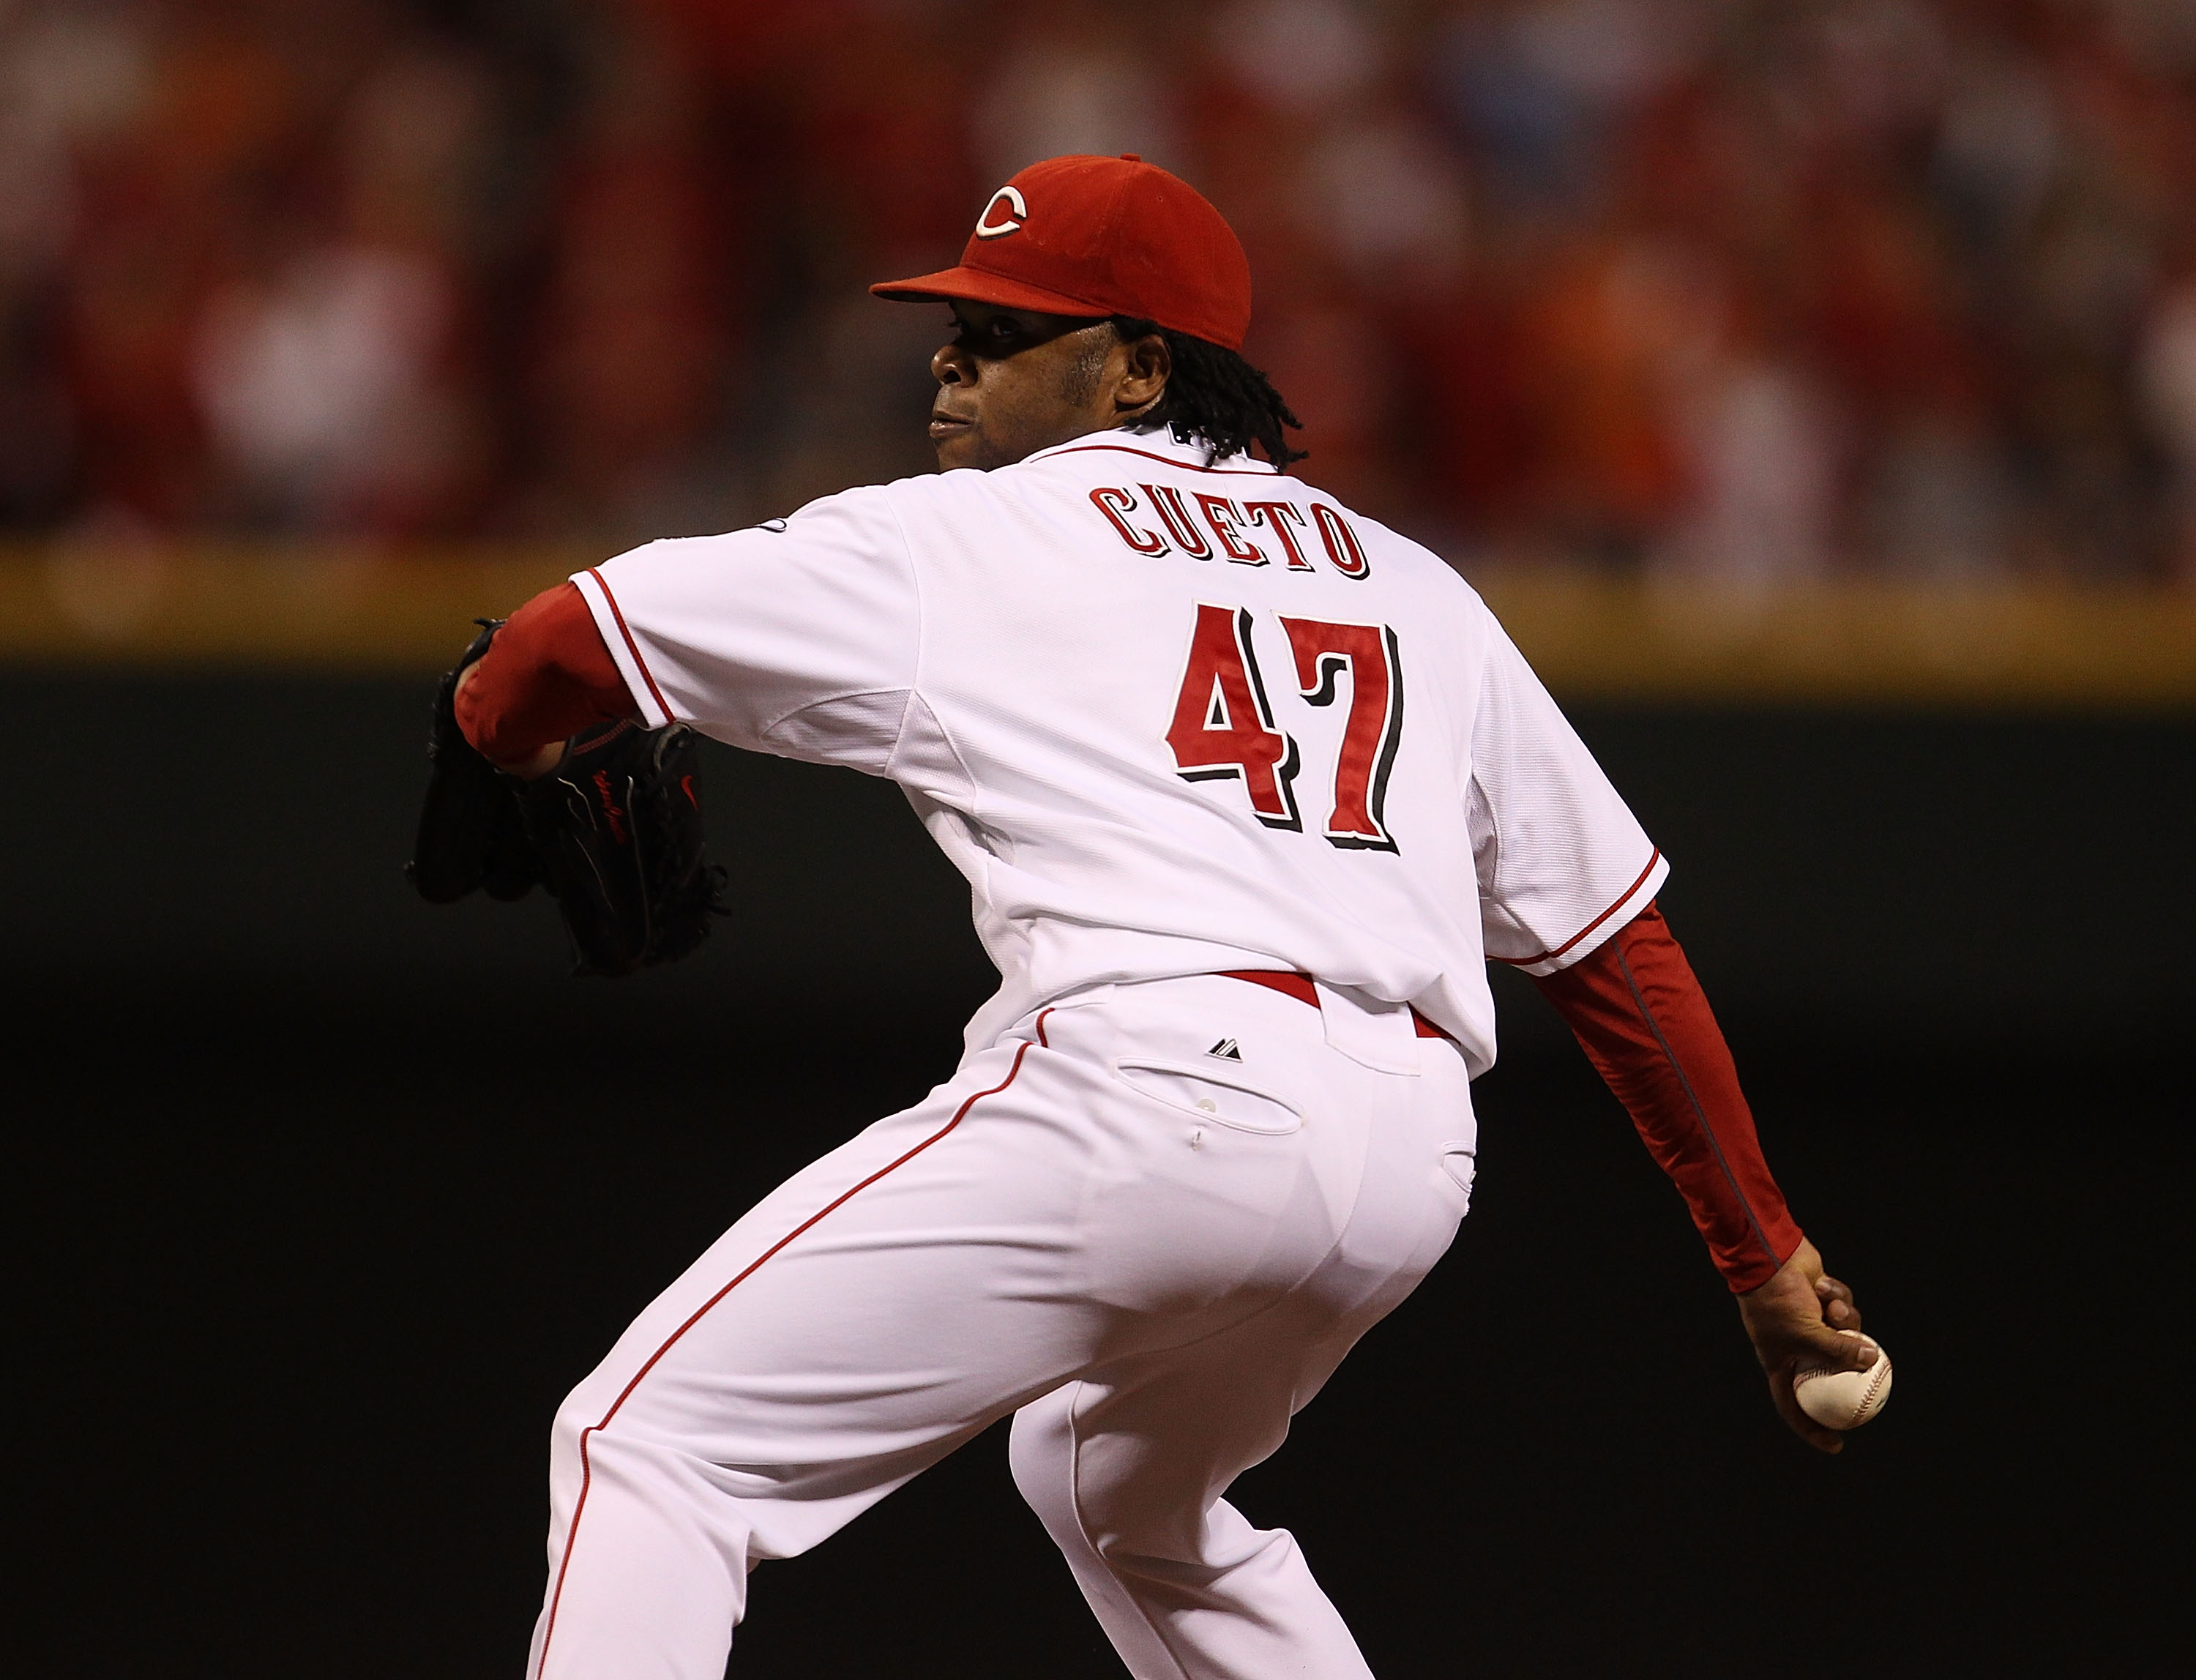 CINCINNATI - OCTOBER 10: Starting pitcher Johnny Cueto #47 of the Cincinnati Reds delivers the ball against the Philadelphia Phillies during game 3 of the NLDS at Great American Ball Park on October 10, 2010 in Cincinnati, Ohio. The Phillies defeated the